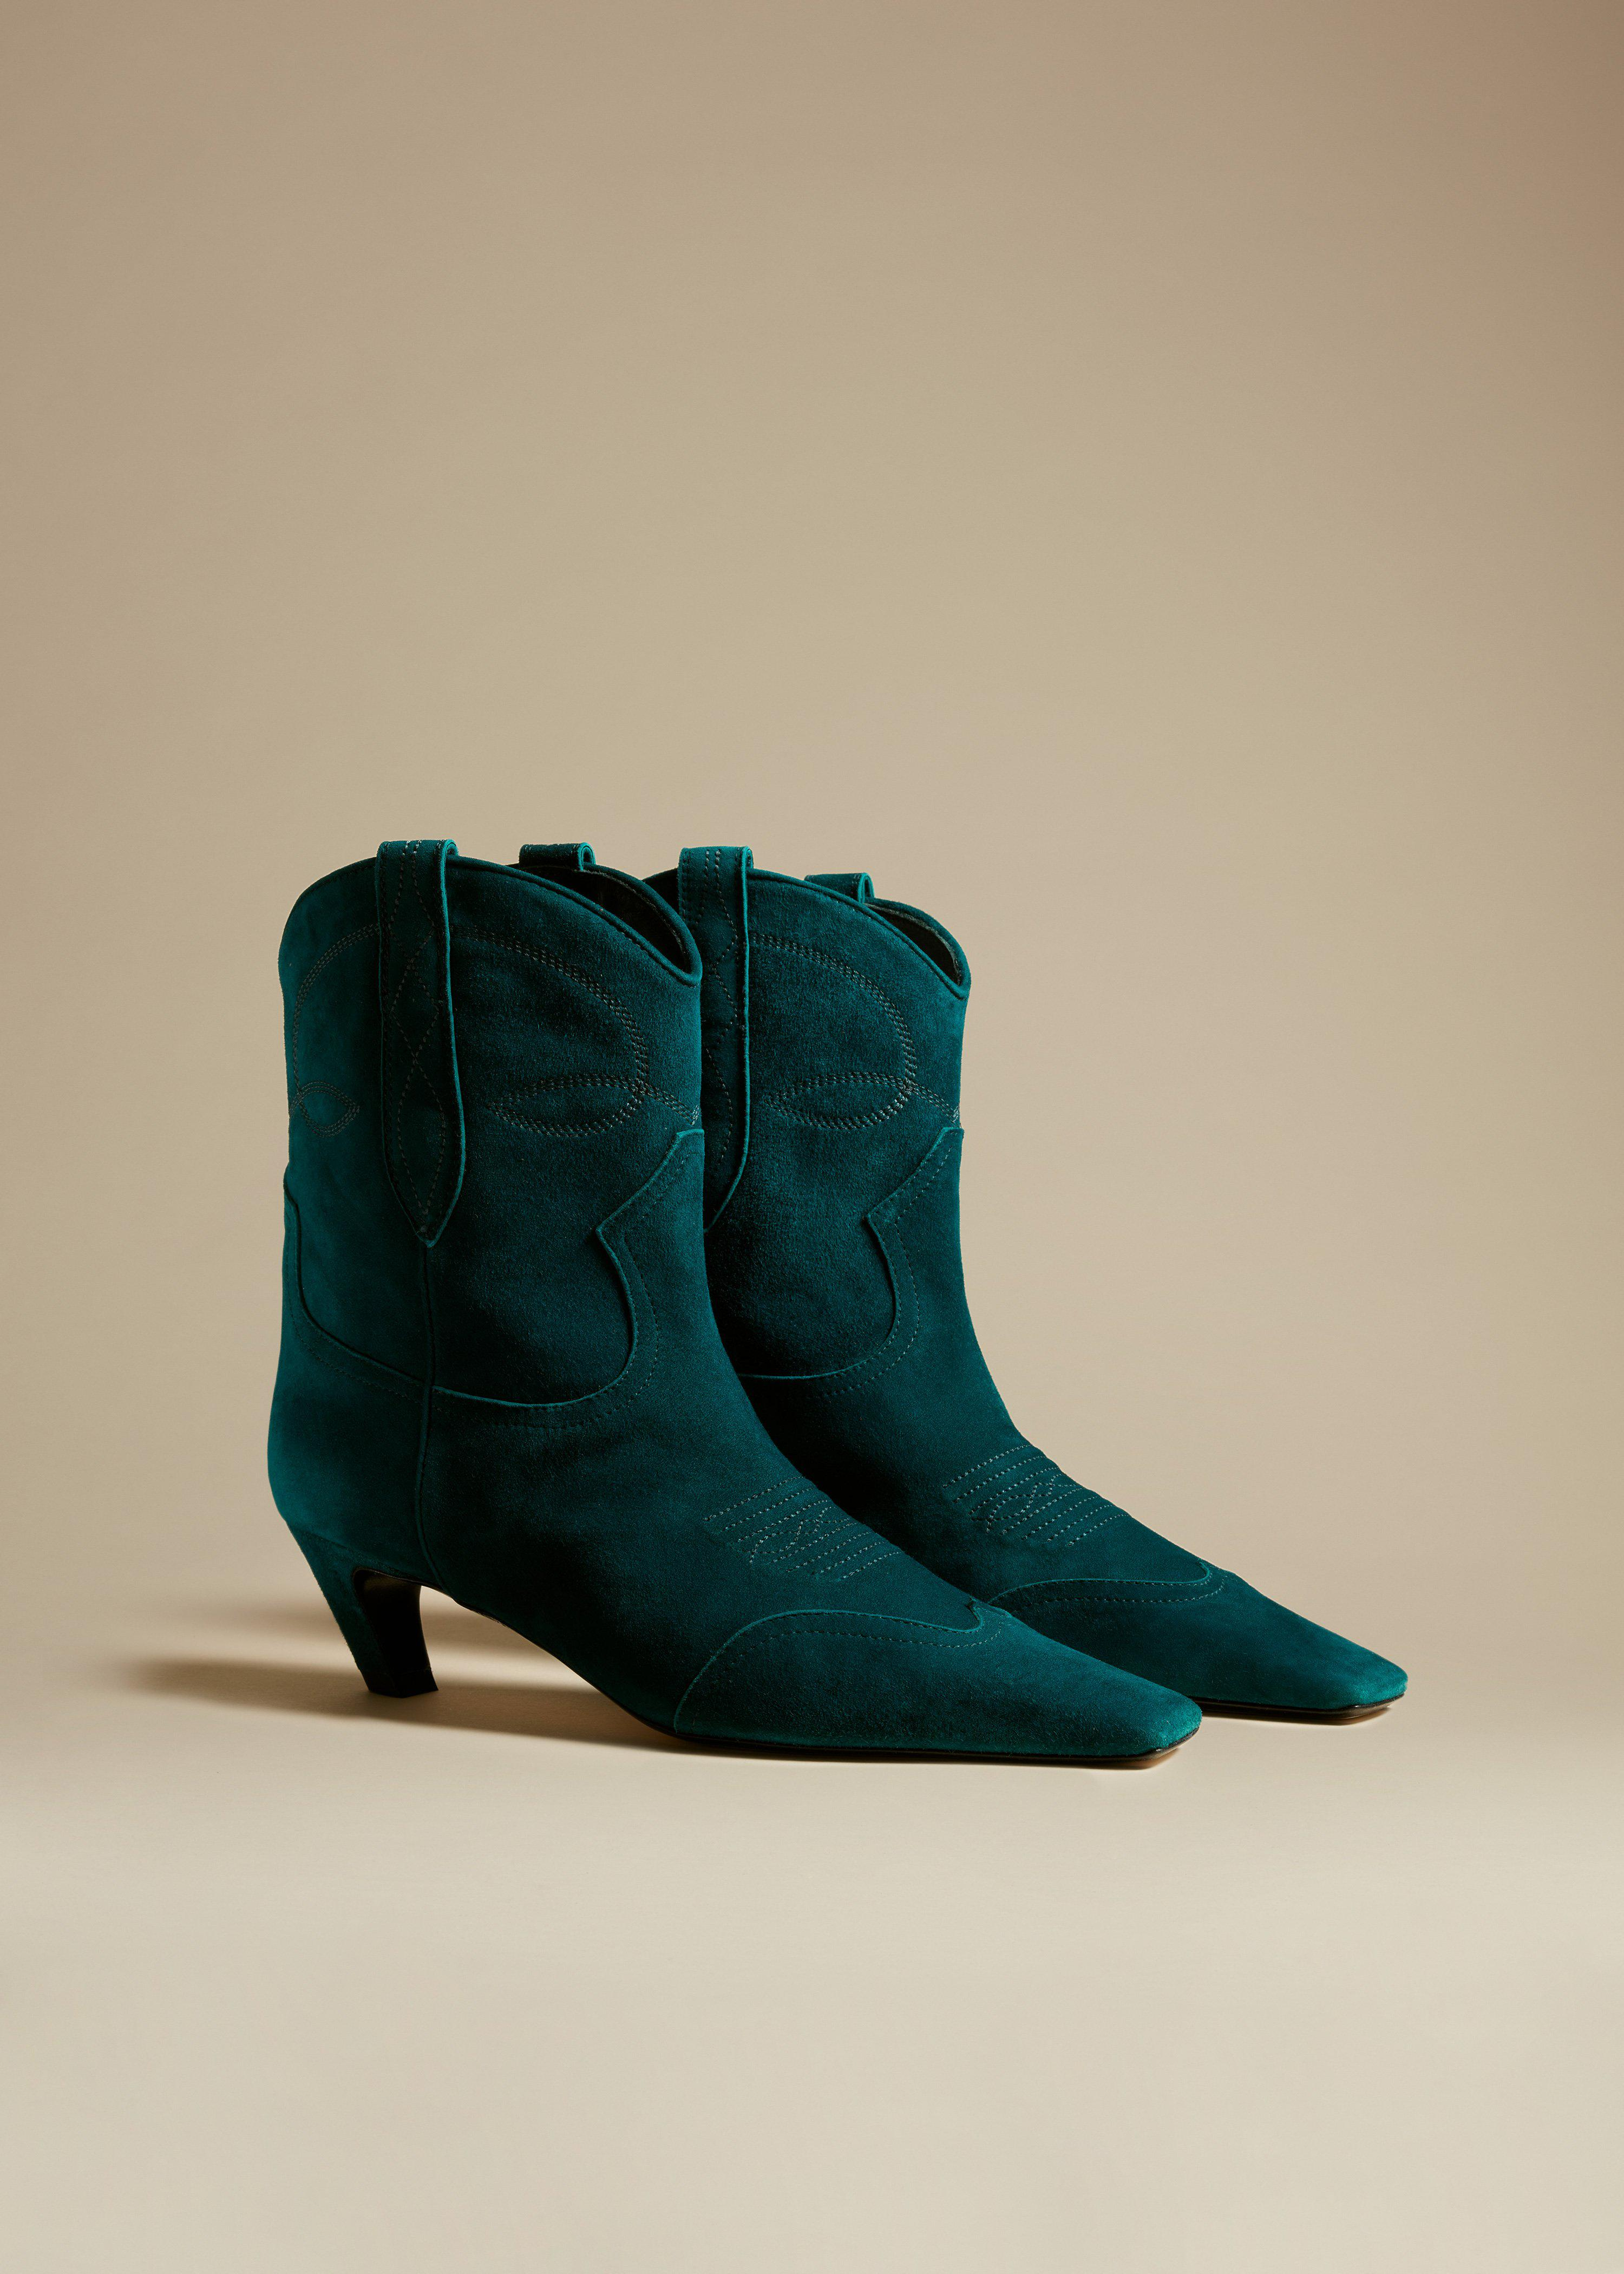 The Dallas Ankle Boot in Dark Teal Suede 1